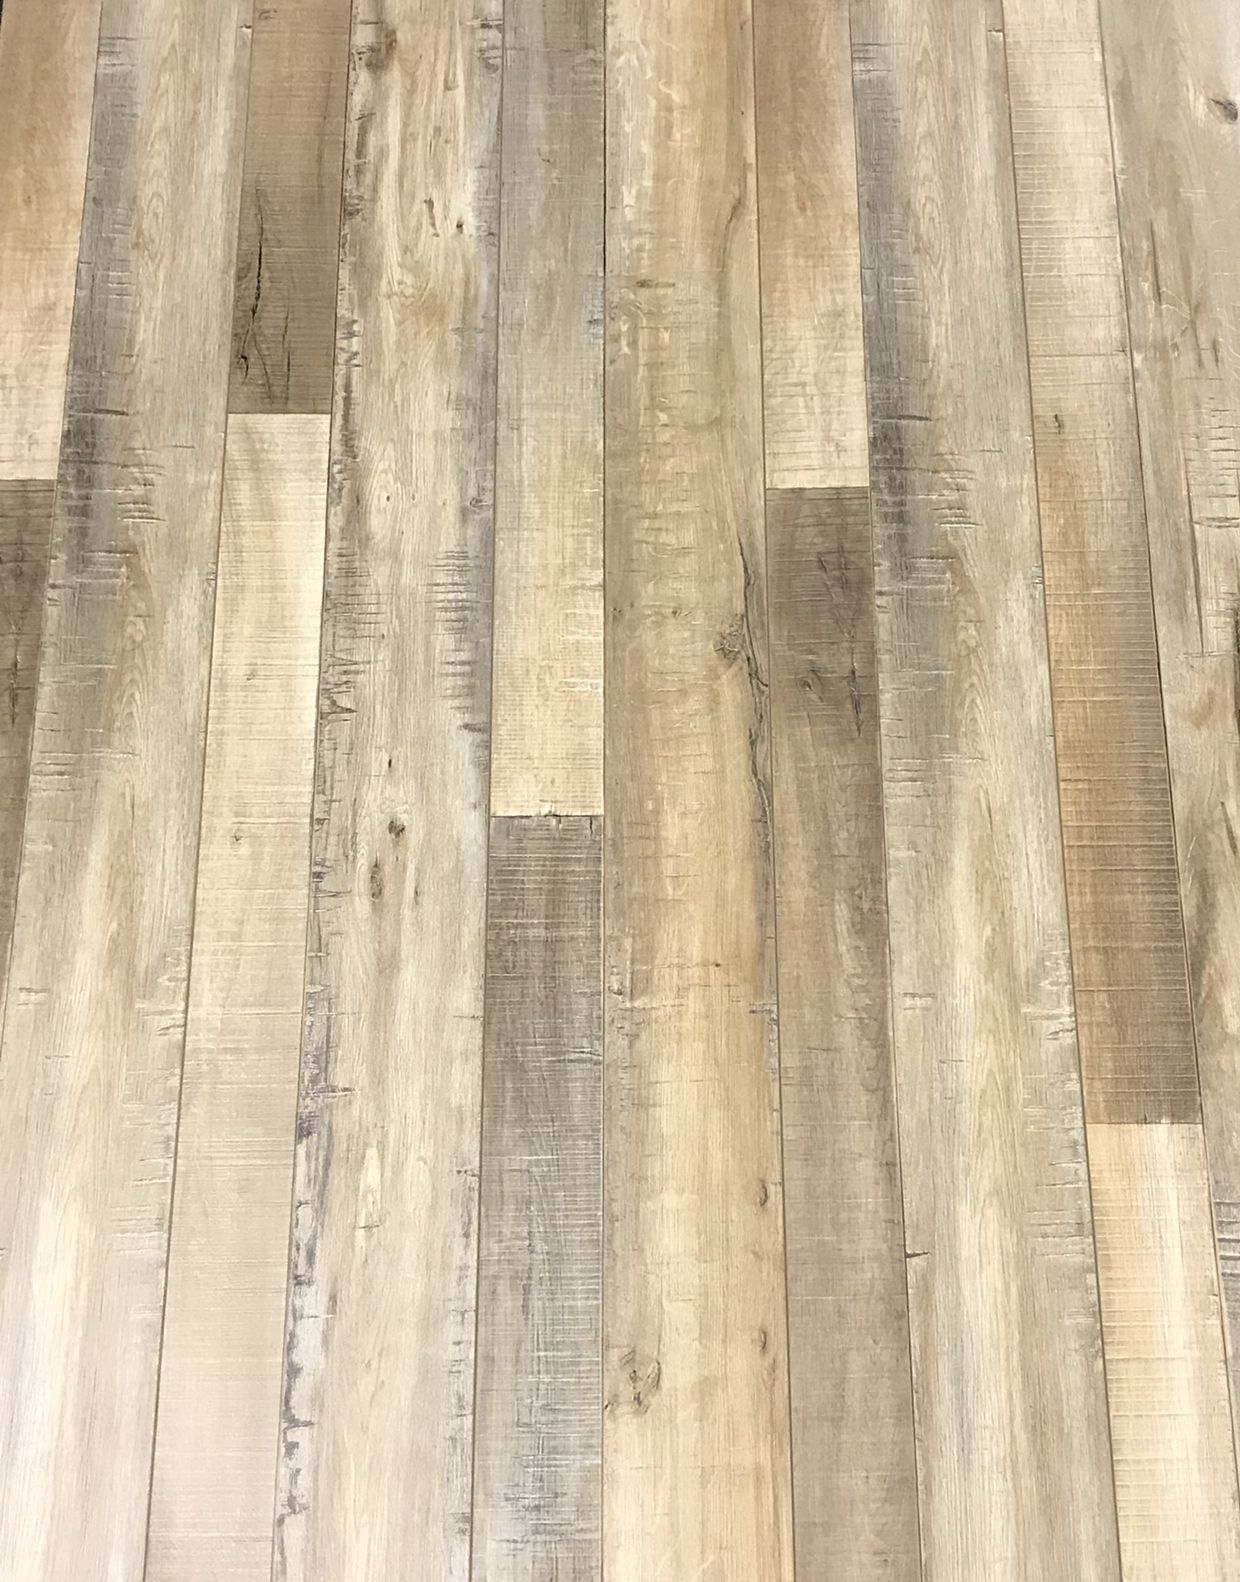 Twin Peaks Laminate Flooring 8mm With Attached Pad Easy Click